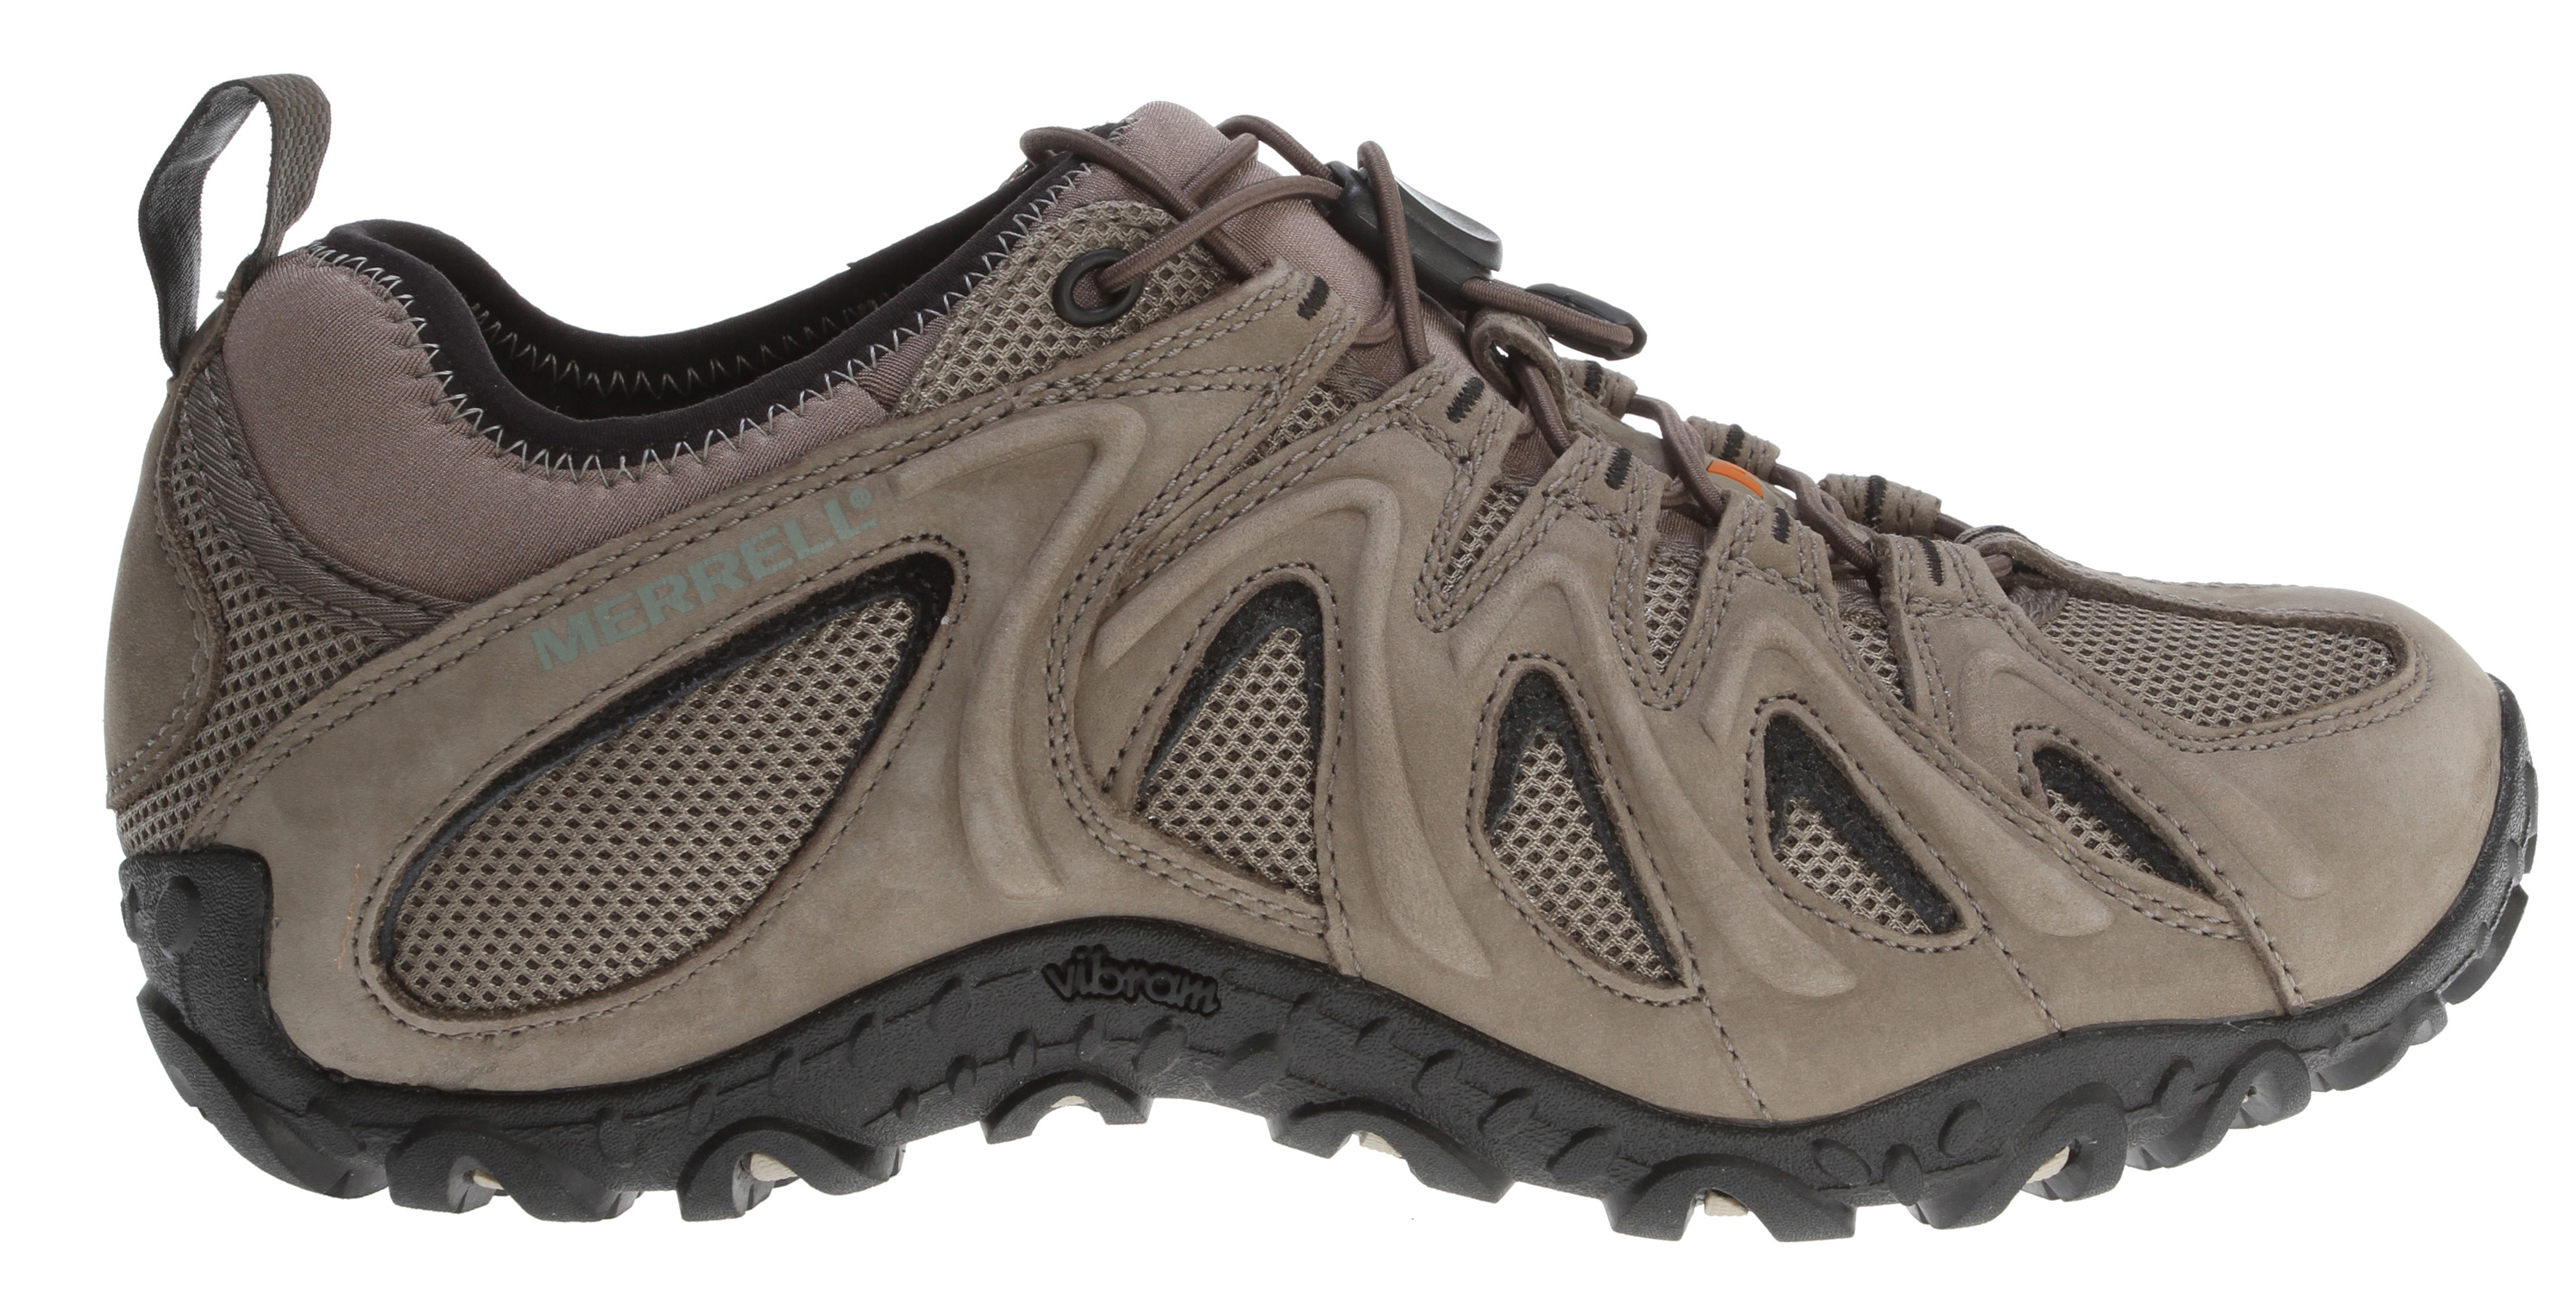 Camp and Hike Hiking shoes built for moving you everywhere on earth, these boast an elastic lock lacing system for a snug, custom fit. An easy on/off lycra/neoprene stretch collar keeps the fit close to keep out the riff raff. Stomp away with its supportive molded arch shank shock-absorbing support.Key Features of the Merrell Chameleon Stretch Hiking Shoes: Strobel construction offers flexibility and comfort Pig suede and mesh upper Lycra®/neoprene stretch collar for easy on and off Elastic cord and lock lacing system for quick secure fit Breathable mesh lining treated with Aegis® antimicrobial solution resists odor 20% recycled EVA dual density footbed provides comfort and support Molded nylon arch shank 2mm EVA inSole for comfort and shock absorption Merrell In-Board™ Compression Molded EVA footframe provides cushioning Merrell air cushion in the heel absorbs shock and adds stability 5 mm Sole lug depth Vibram® Chameleon4 Sole/TC5+Rubber Men's Weight: 1 lbs 13 ozs - $86.95